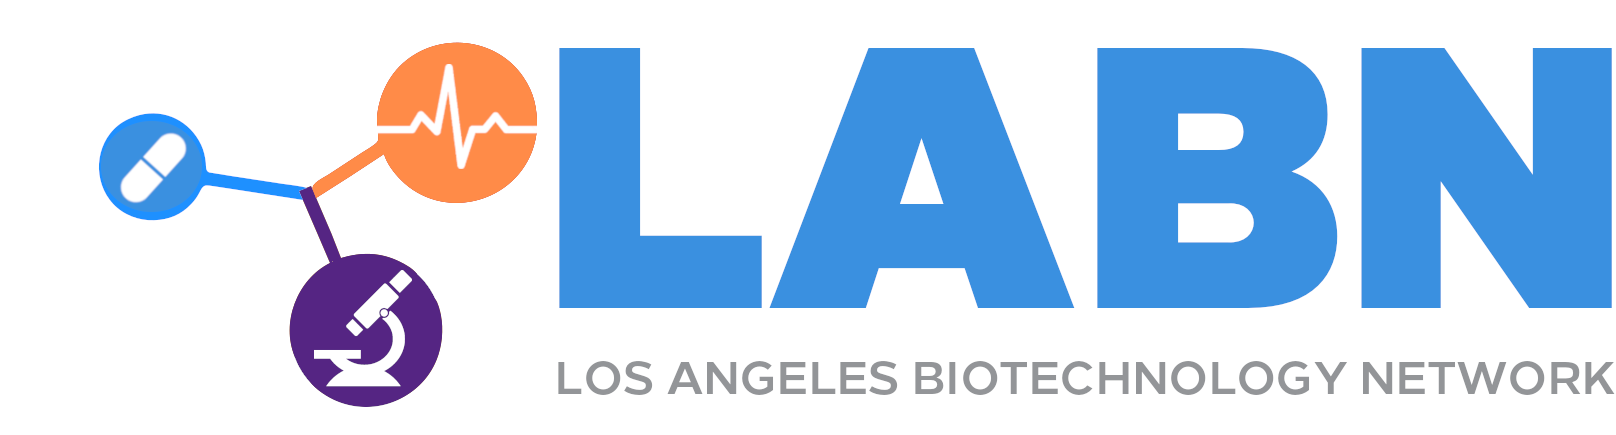 Los Angeles Biotechnology Network